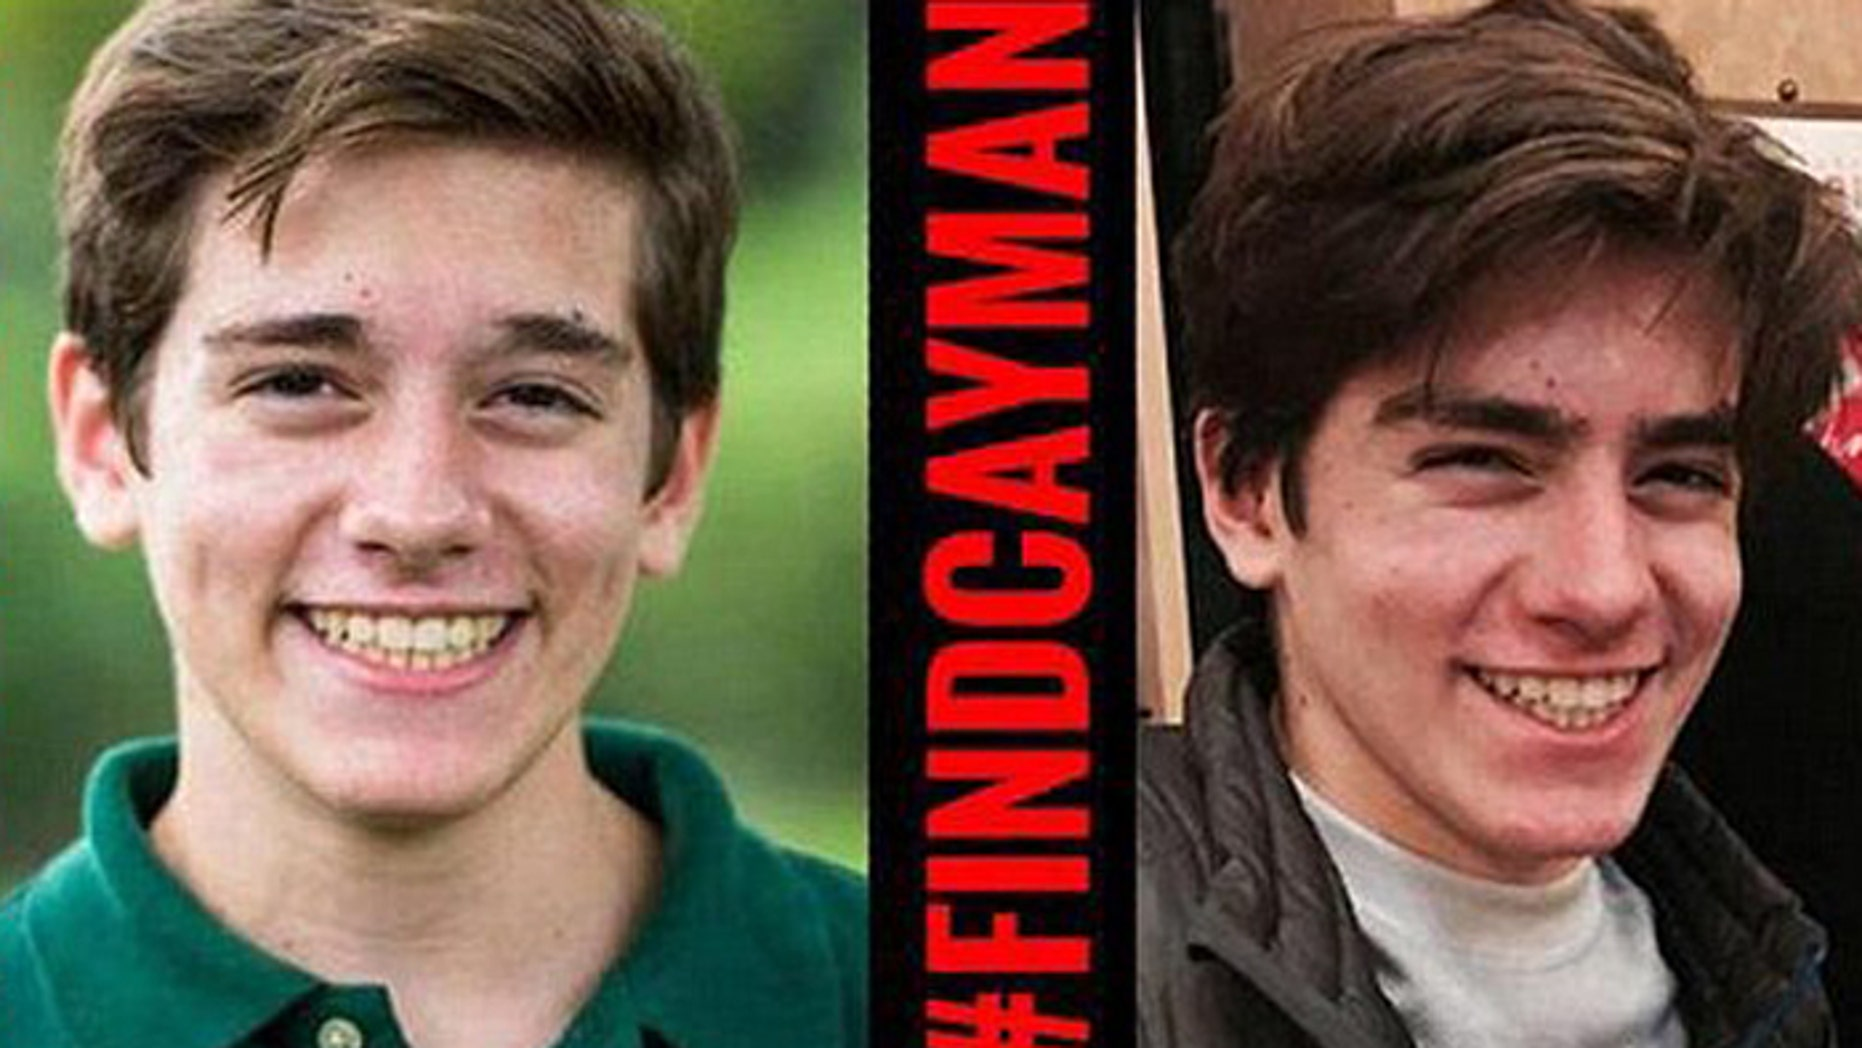 Hundreds searched for Cayman Naib, 13, who disappeared just before a snowstorm, and after getting an email from school about overdue homework. (Facebook)